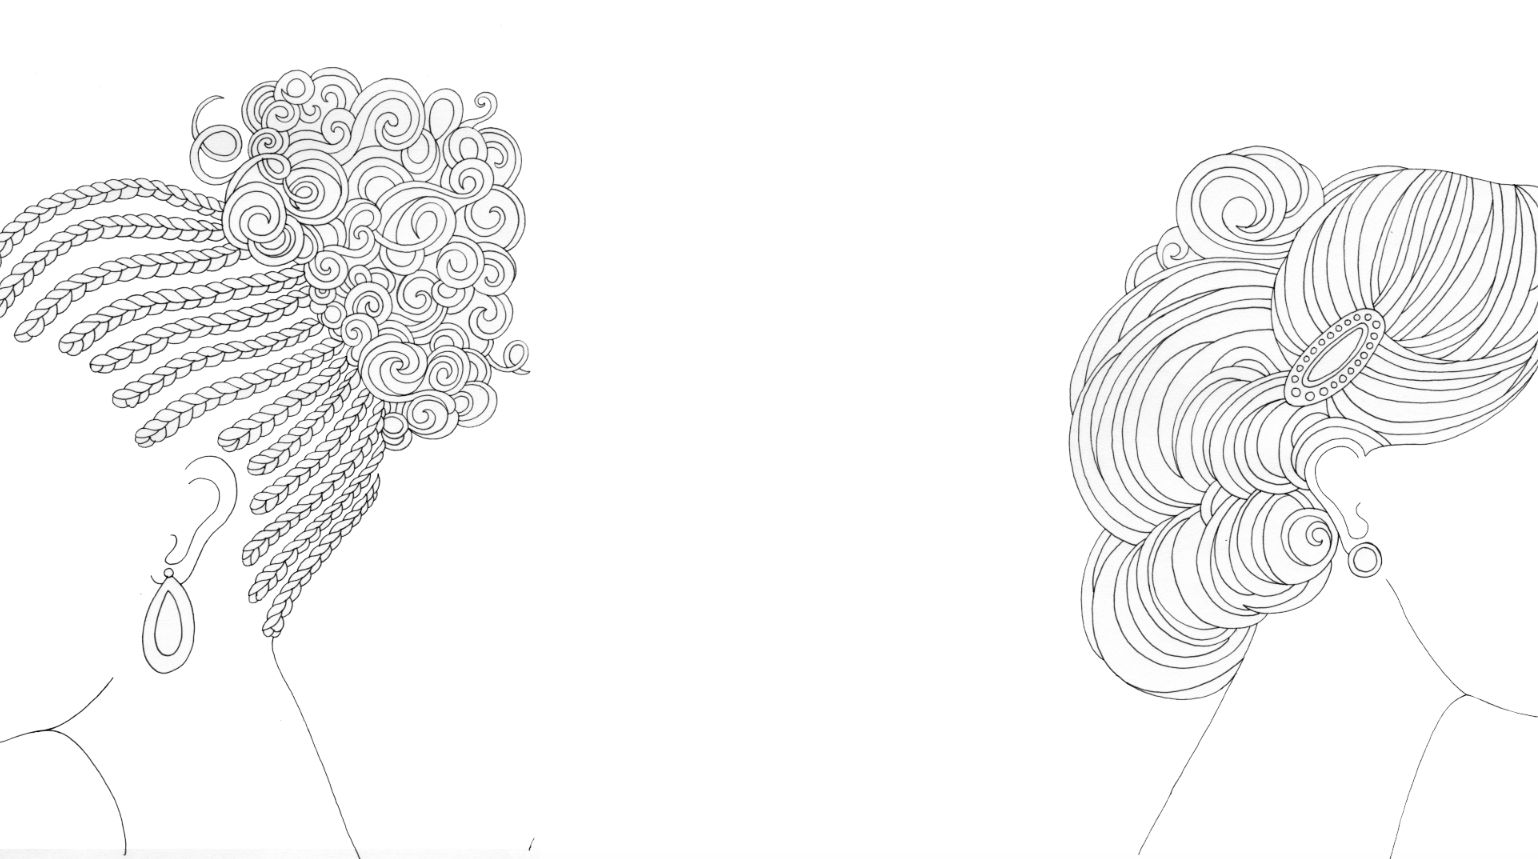 Coloring Book 'I Love My Hair' Celebrates Curls, Braids